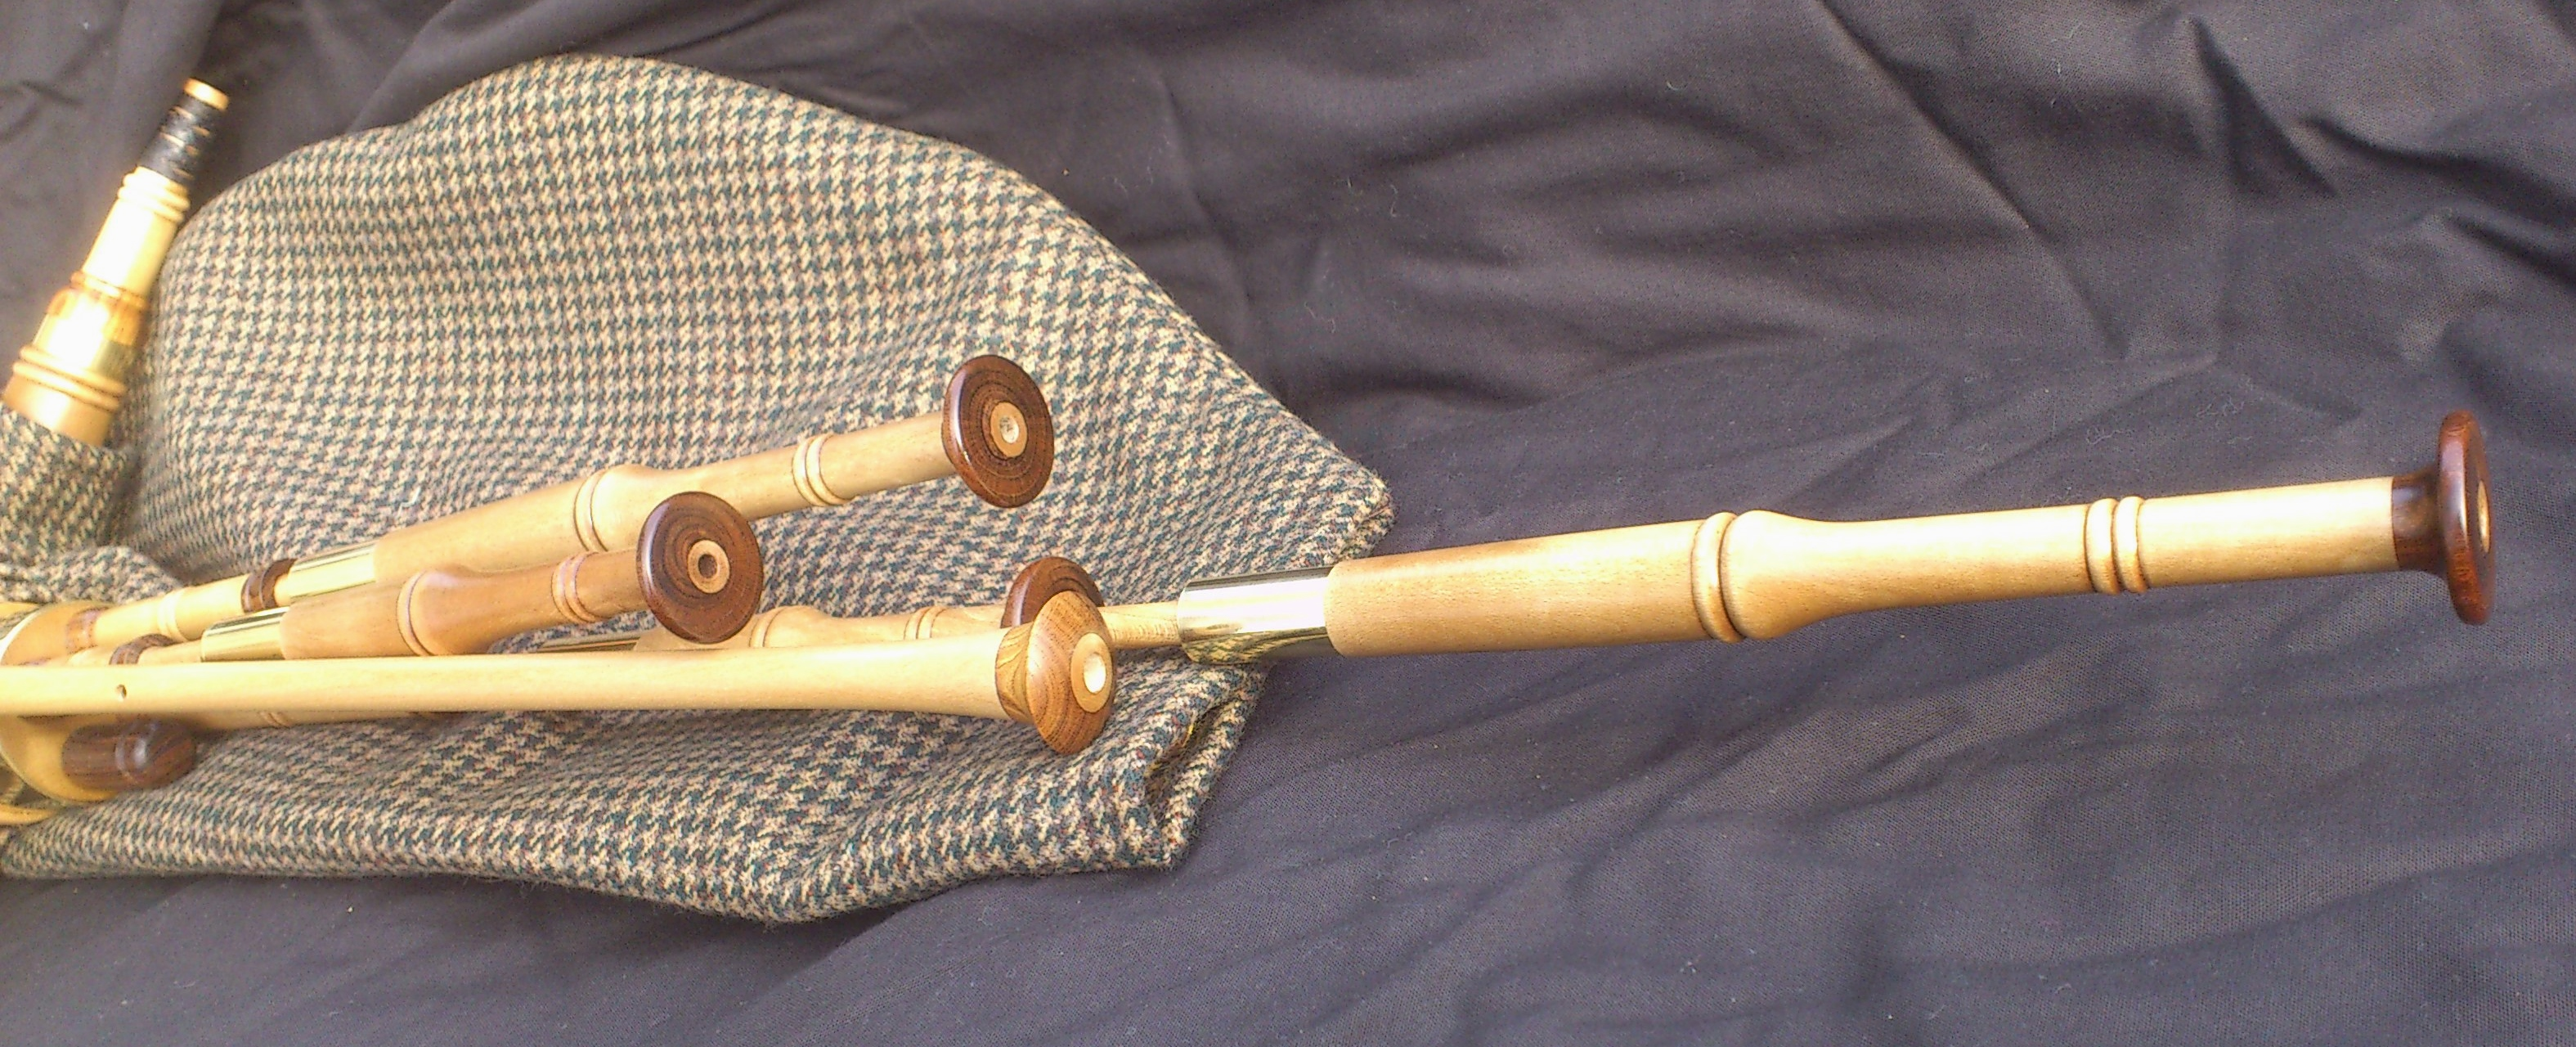 holly smallpipes (9).JPG